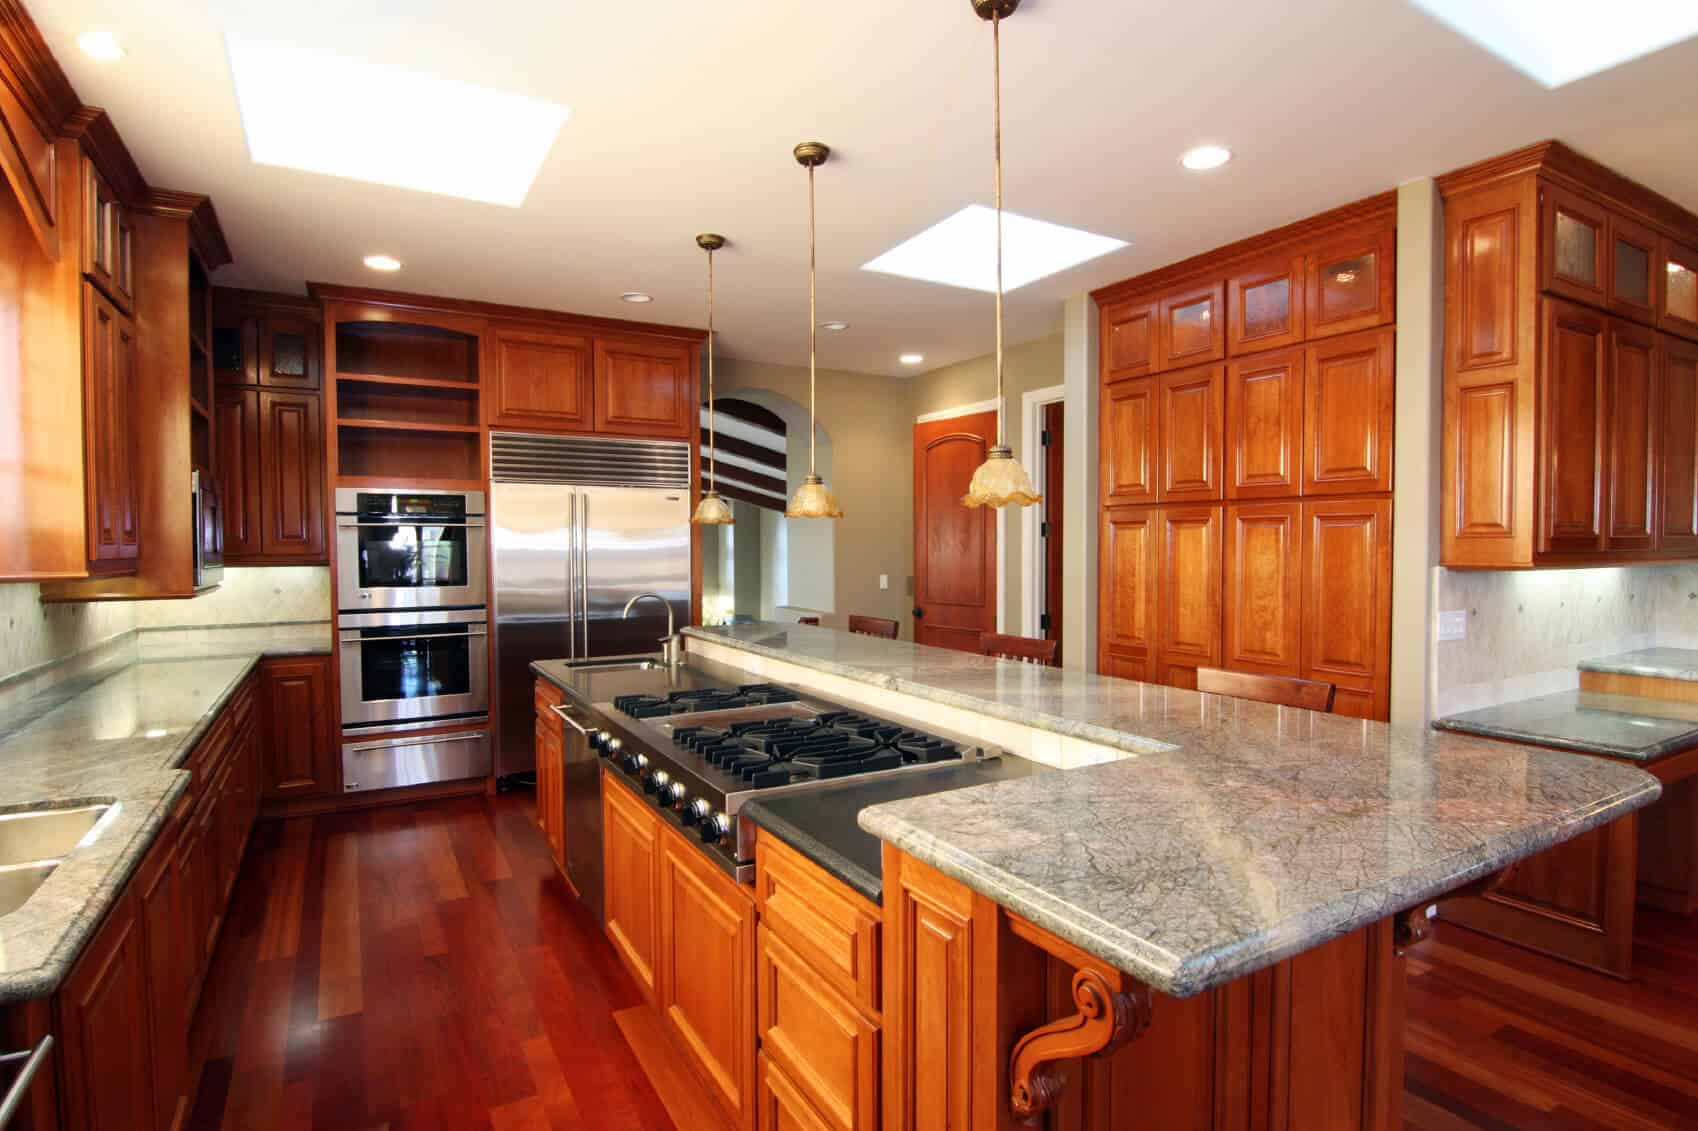 Kitchen centered around lengthy island featuring full range, sink, and dishwasher, plus raised marble countertop for dining.